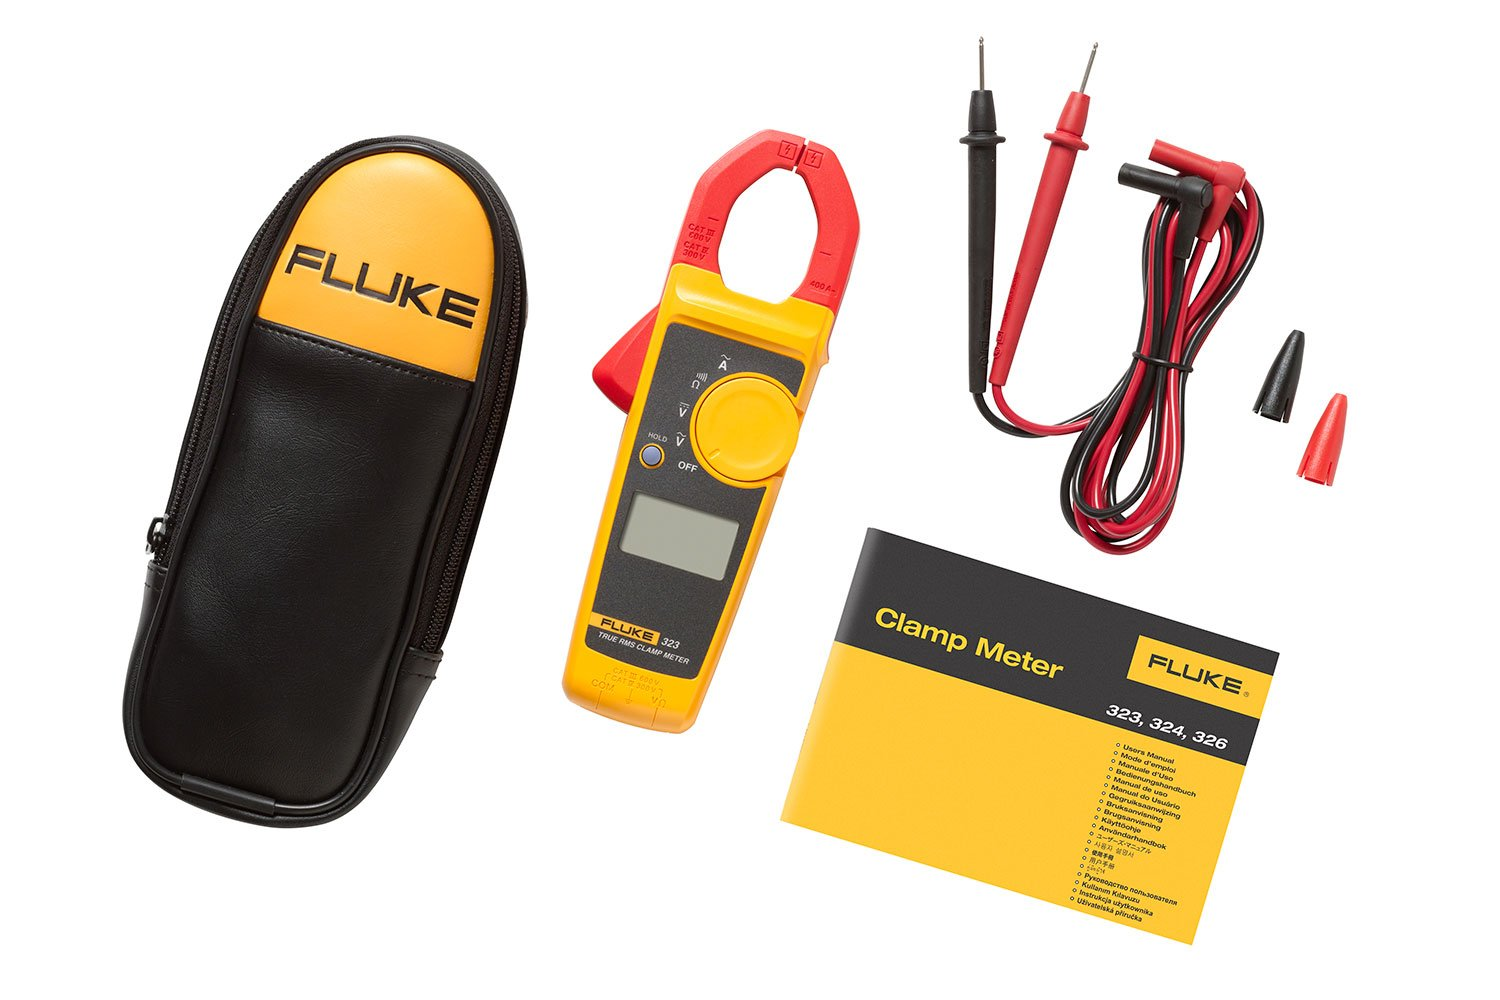 Ideal Clamp Multimeter Fluke 323 True Rms Meter Using An Electrical To Troubleshoot Wiring Problems Youtube